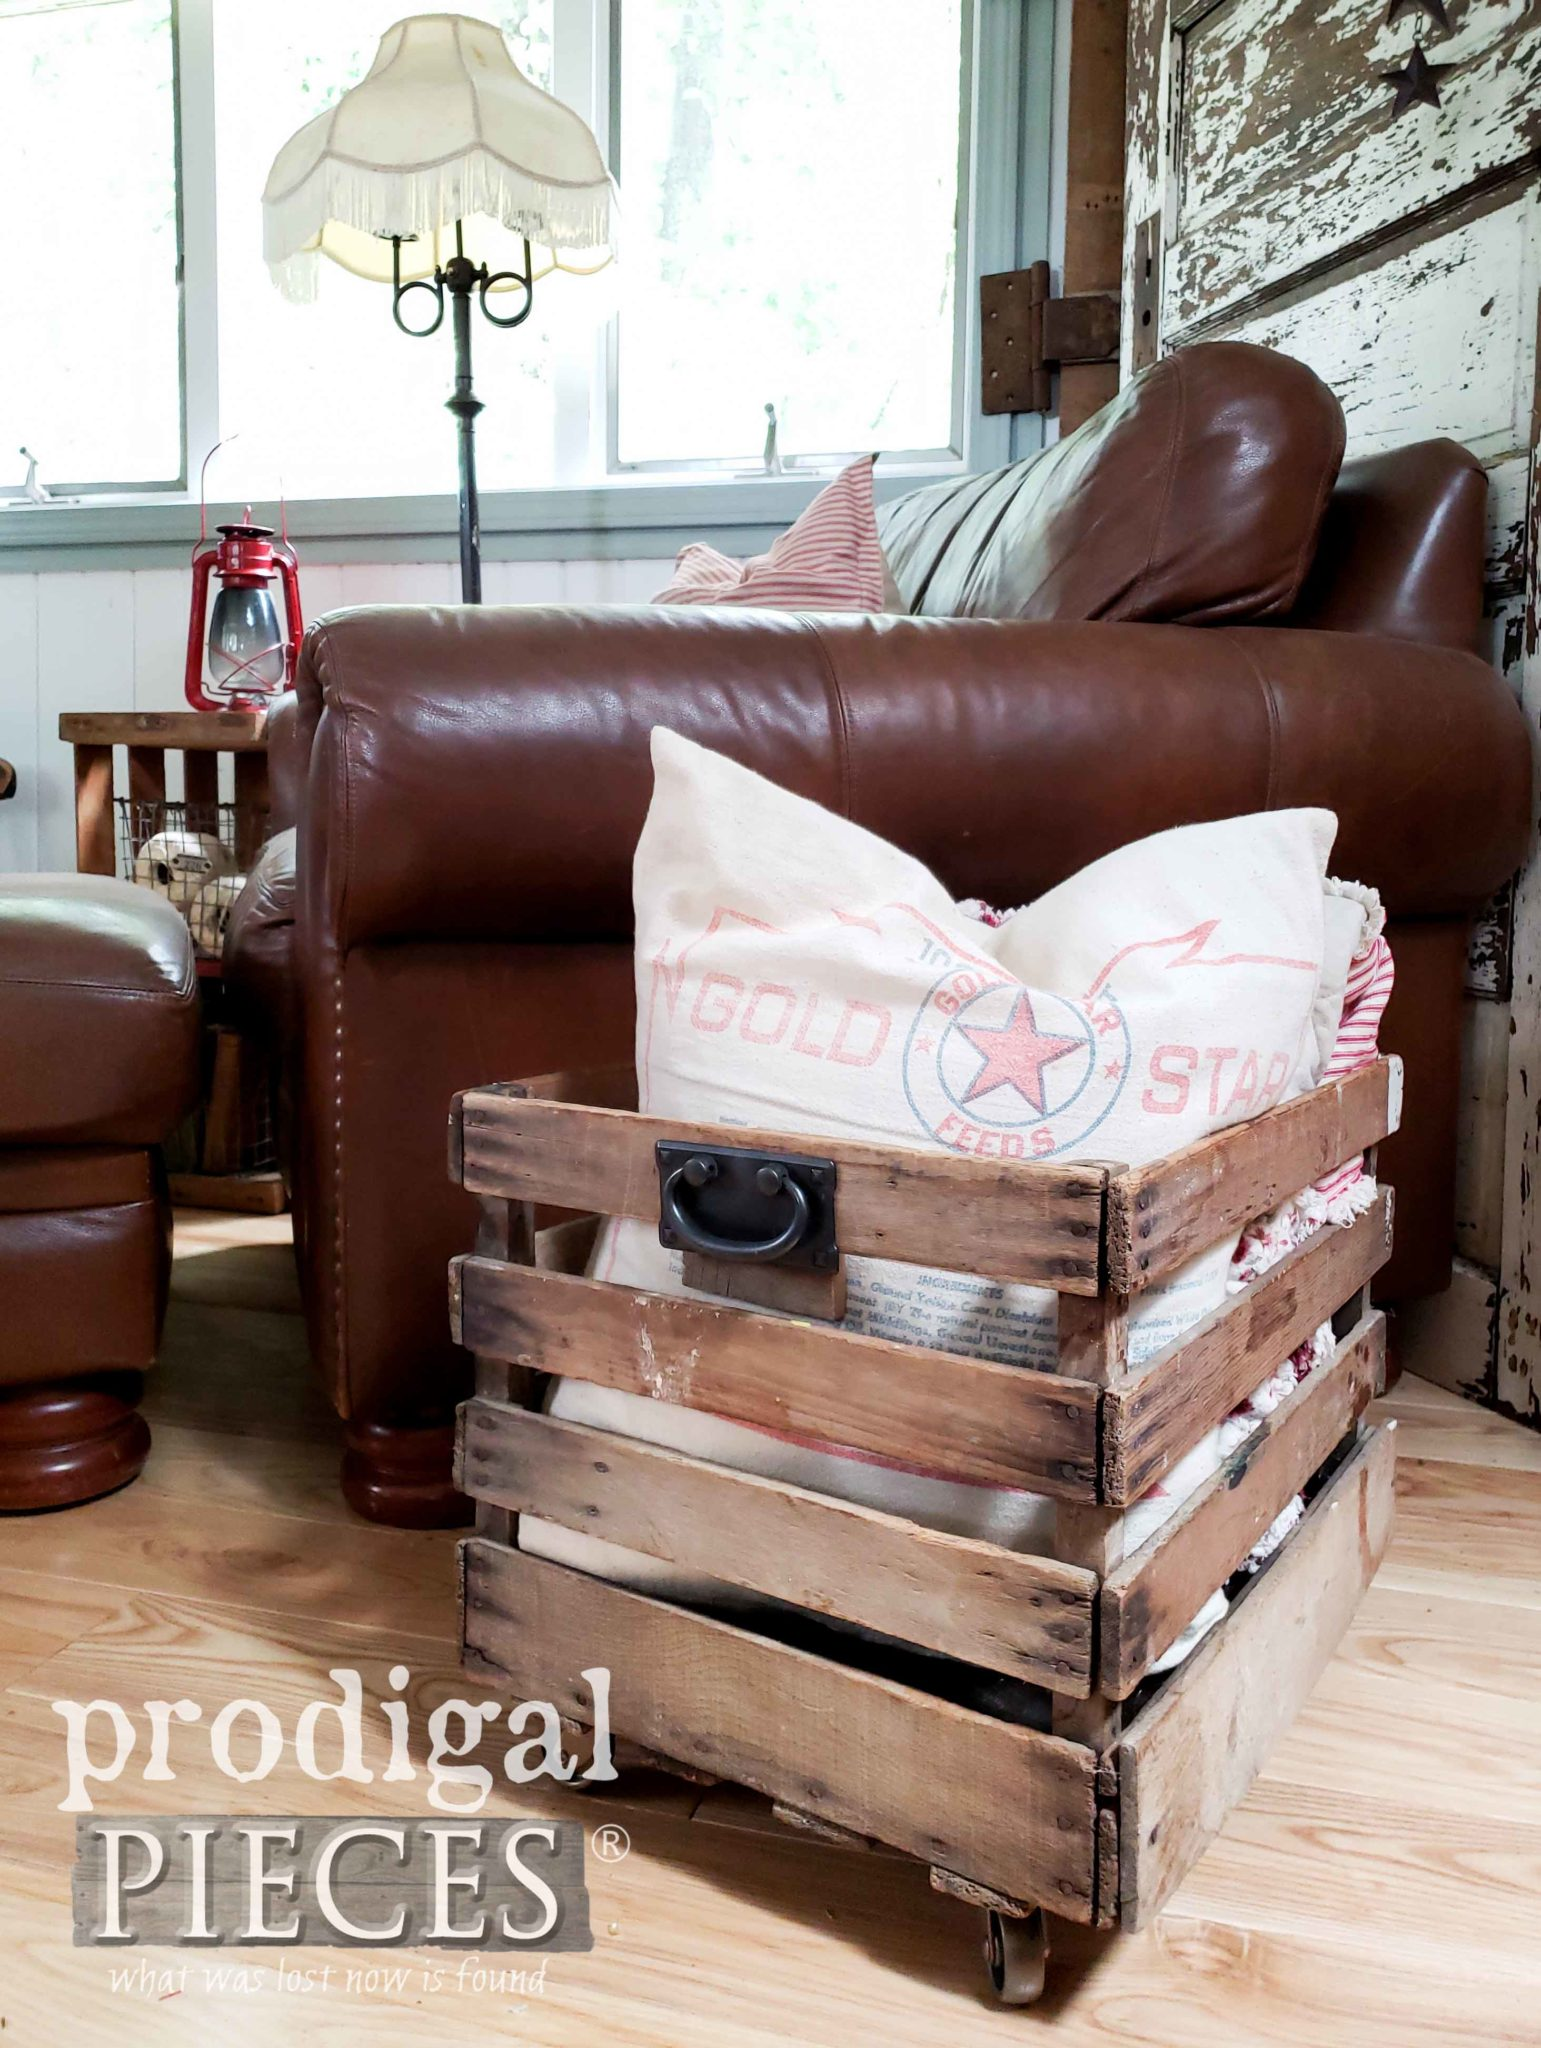 Upcycled Farmhouse Crate for DIY Decor by Larissa of Prodigal Pieces | prodigalpieces.com #prodigalpieces #diy #home #homedecor